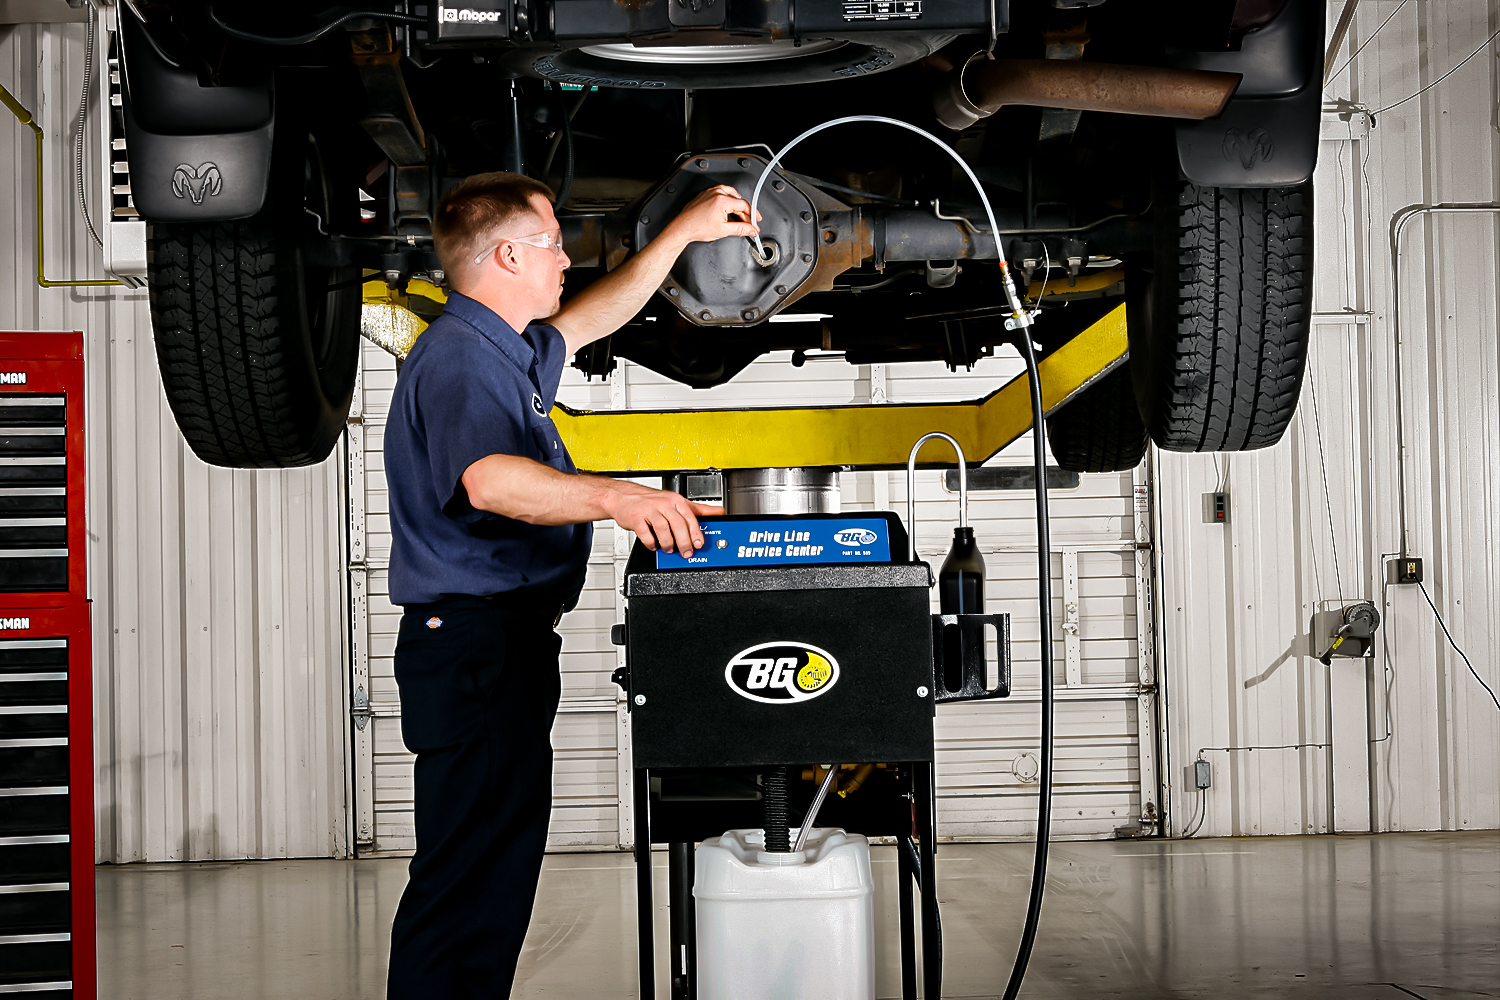 bg product differential fluid maintenance service being performed